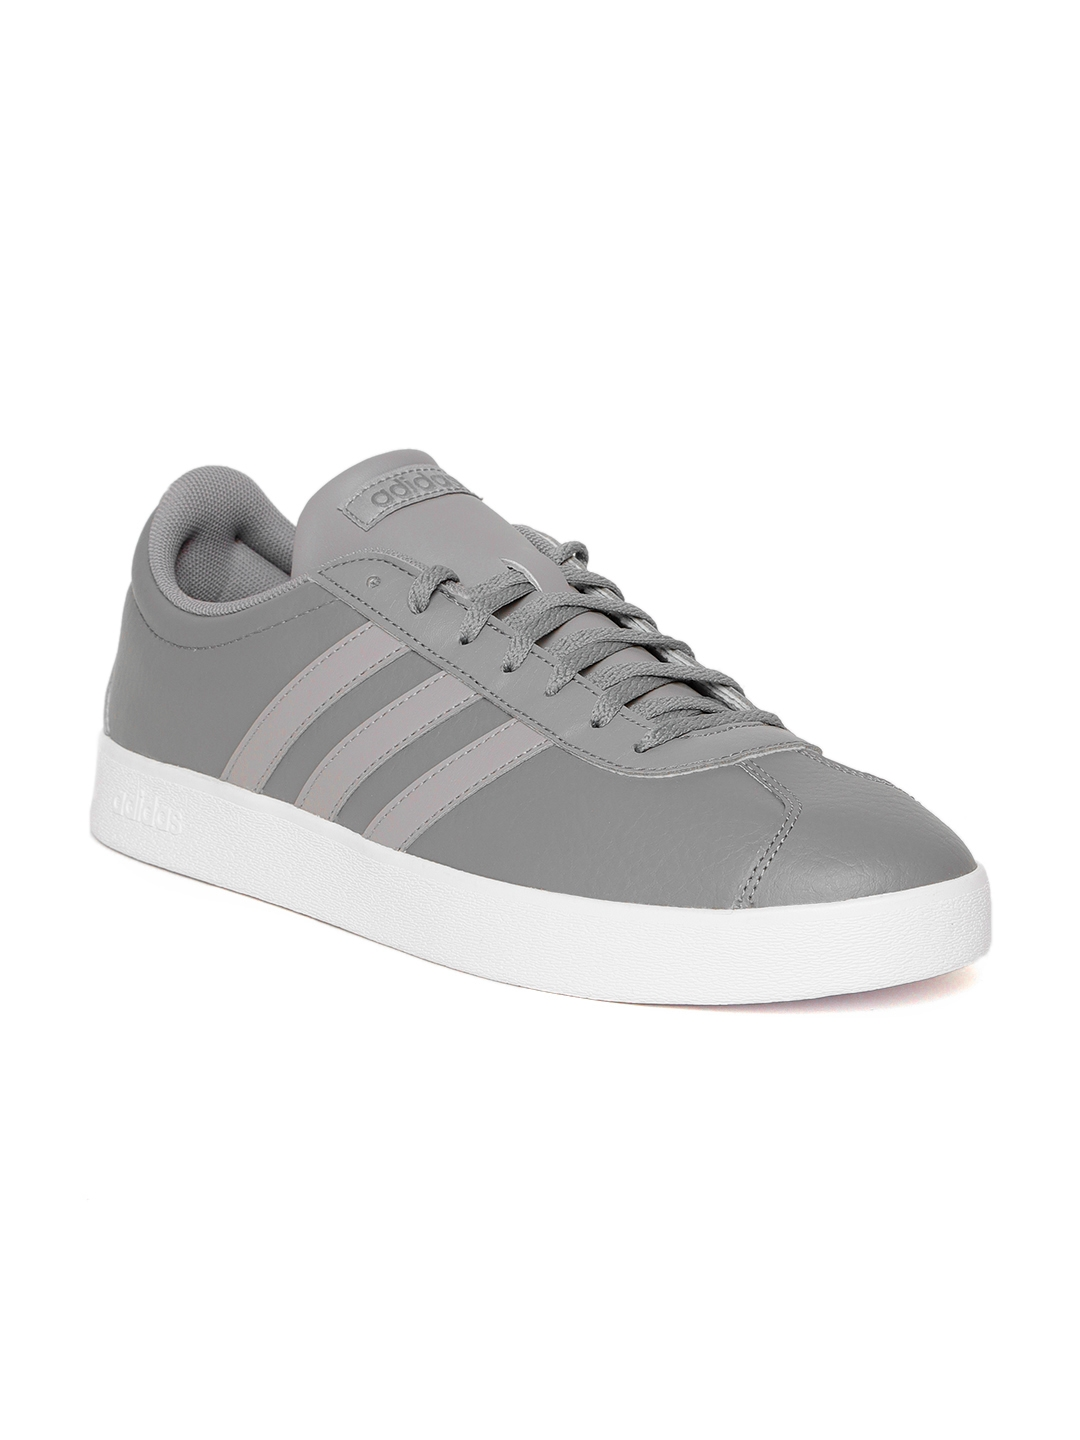 24d6ce863df Buy ADIDAS Originals Men Grey VL Court 2.0 Skateboarding Shoes ...